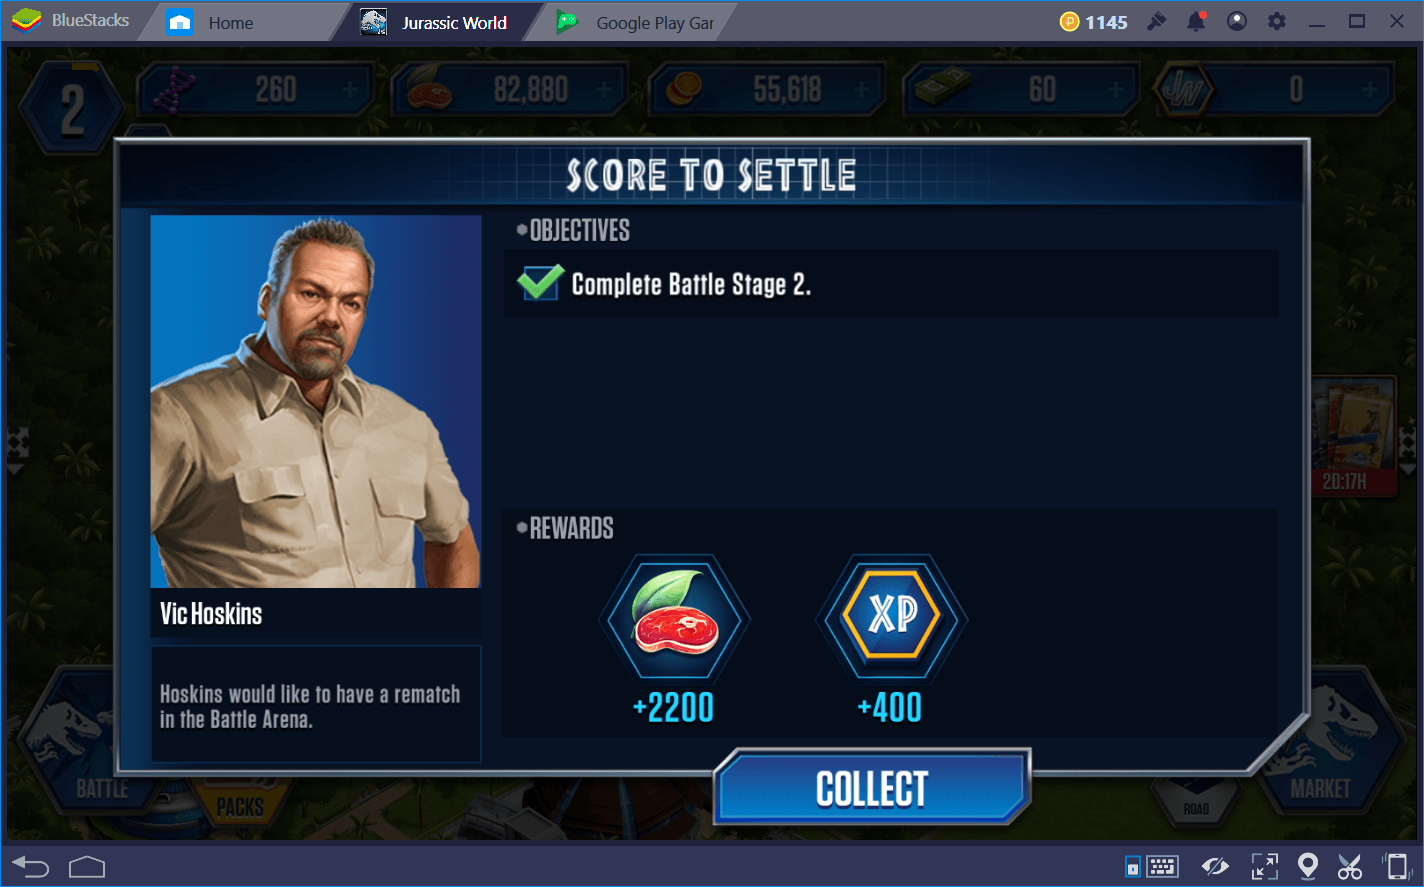 Getting Started in Jurassic World: The Game